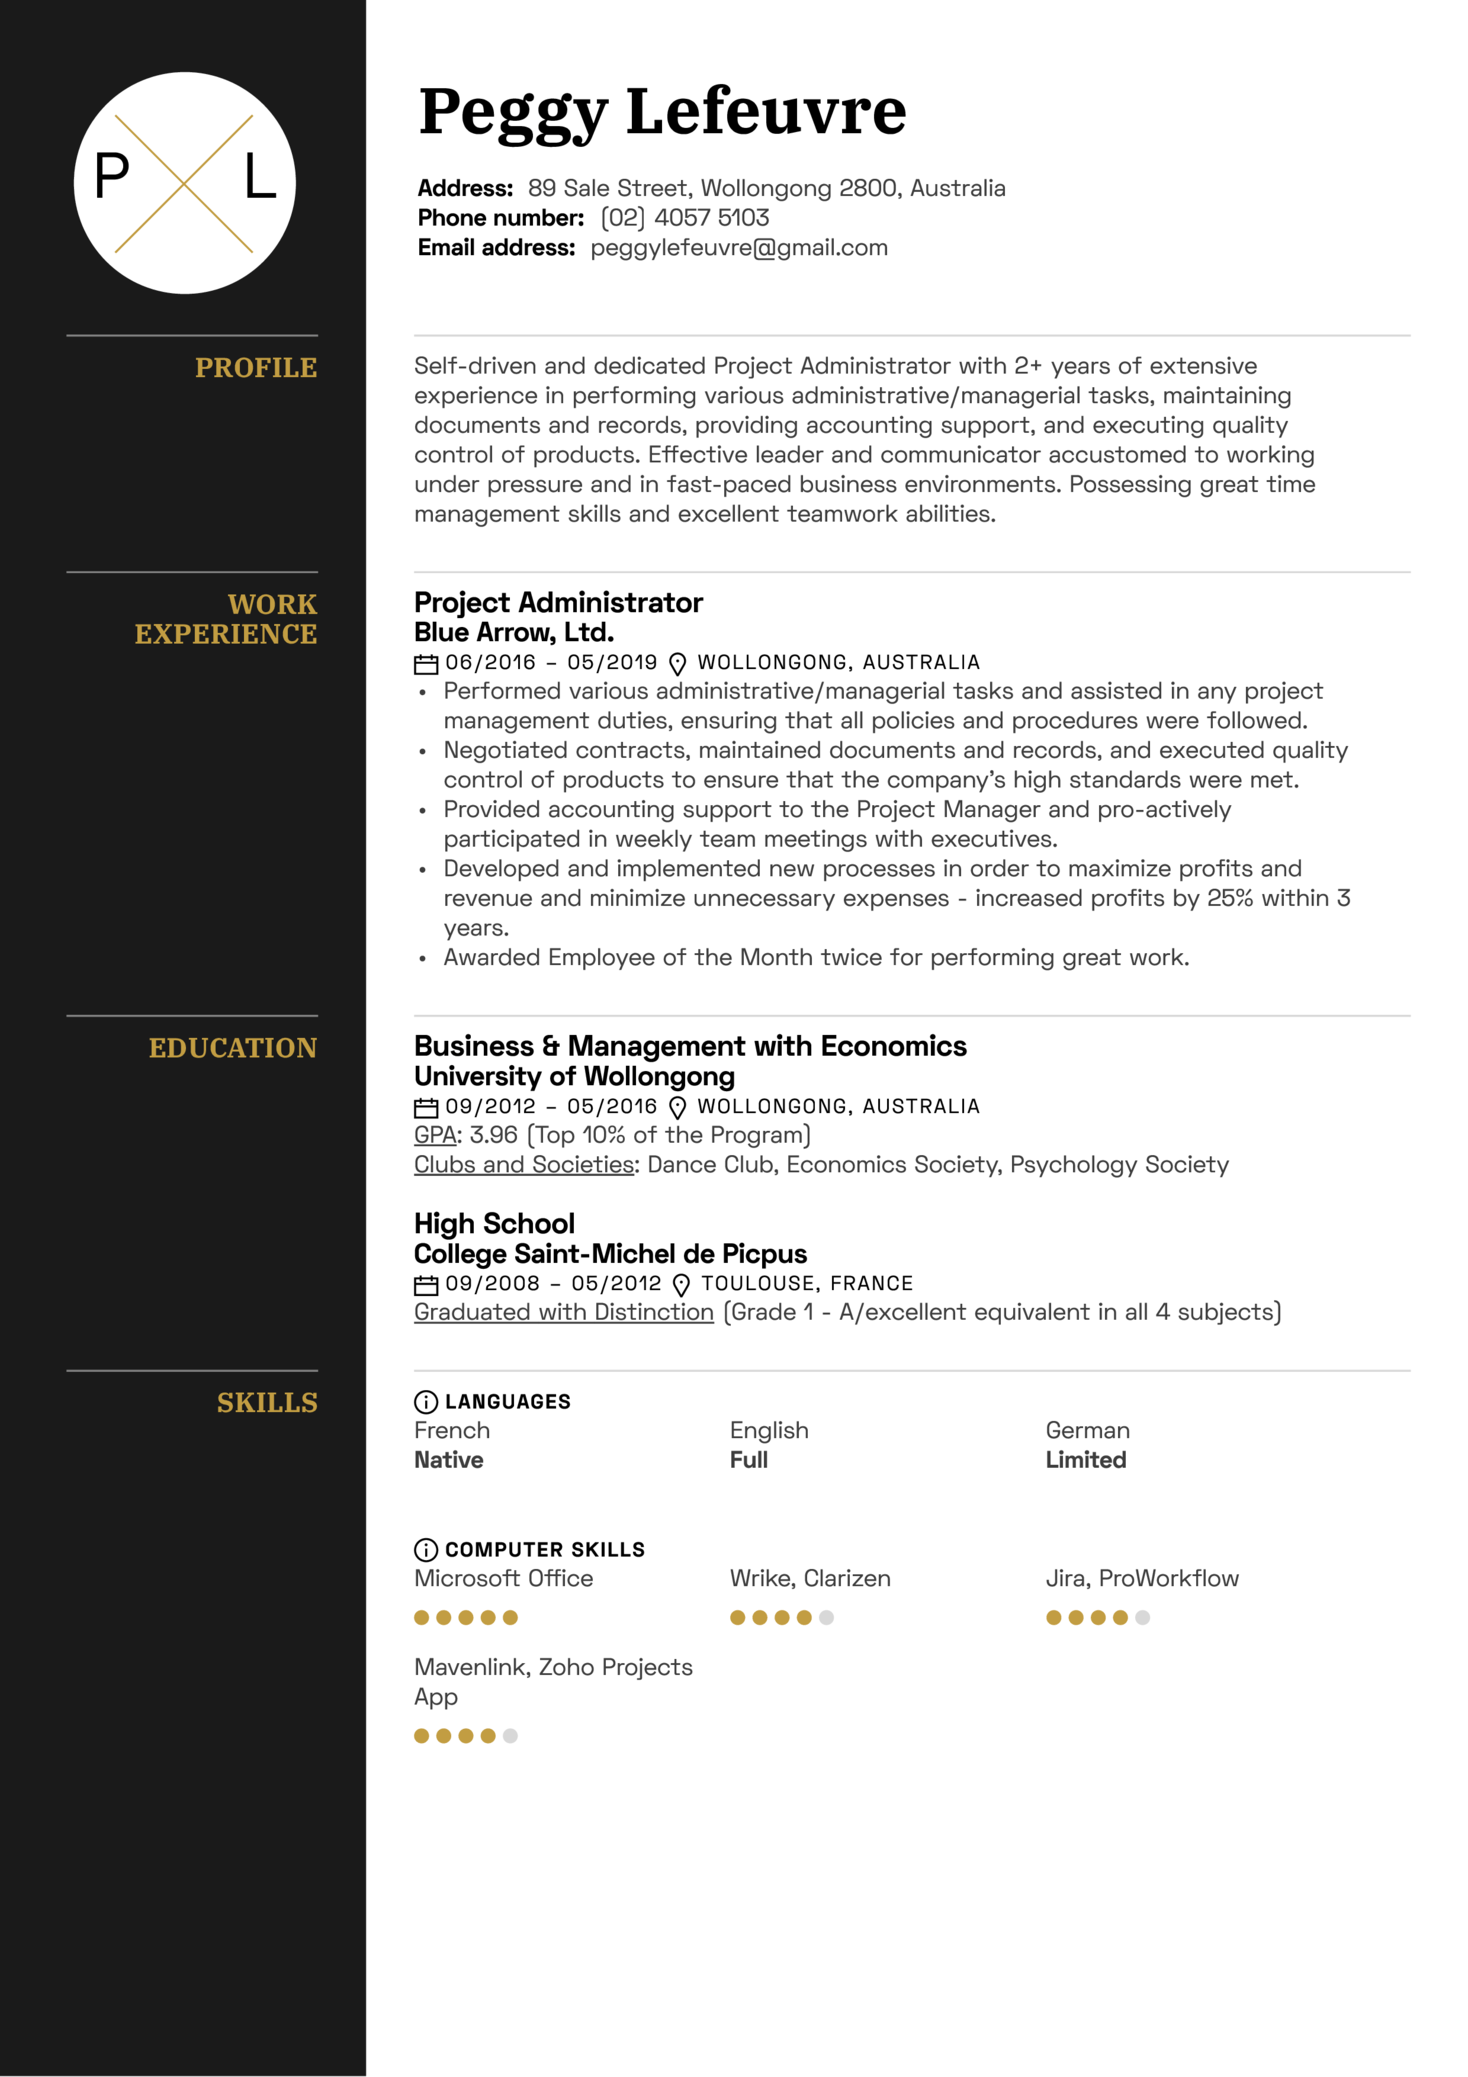 Project Administrator Resume Sample (Part 1)